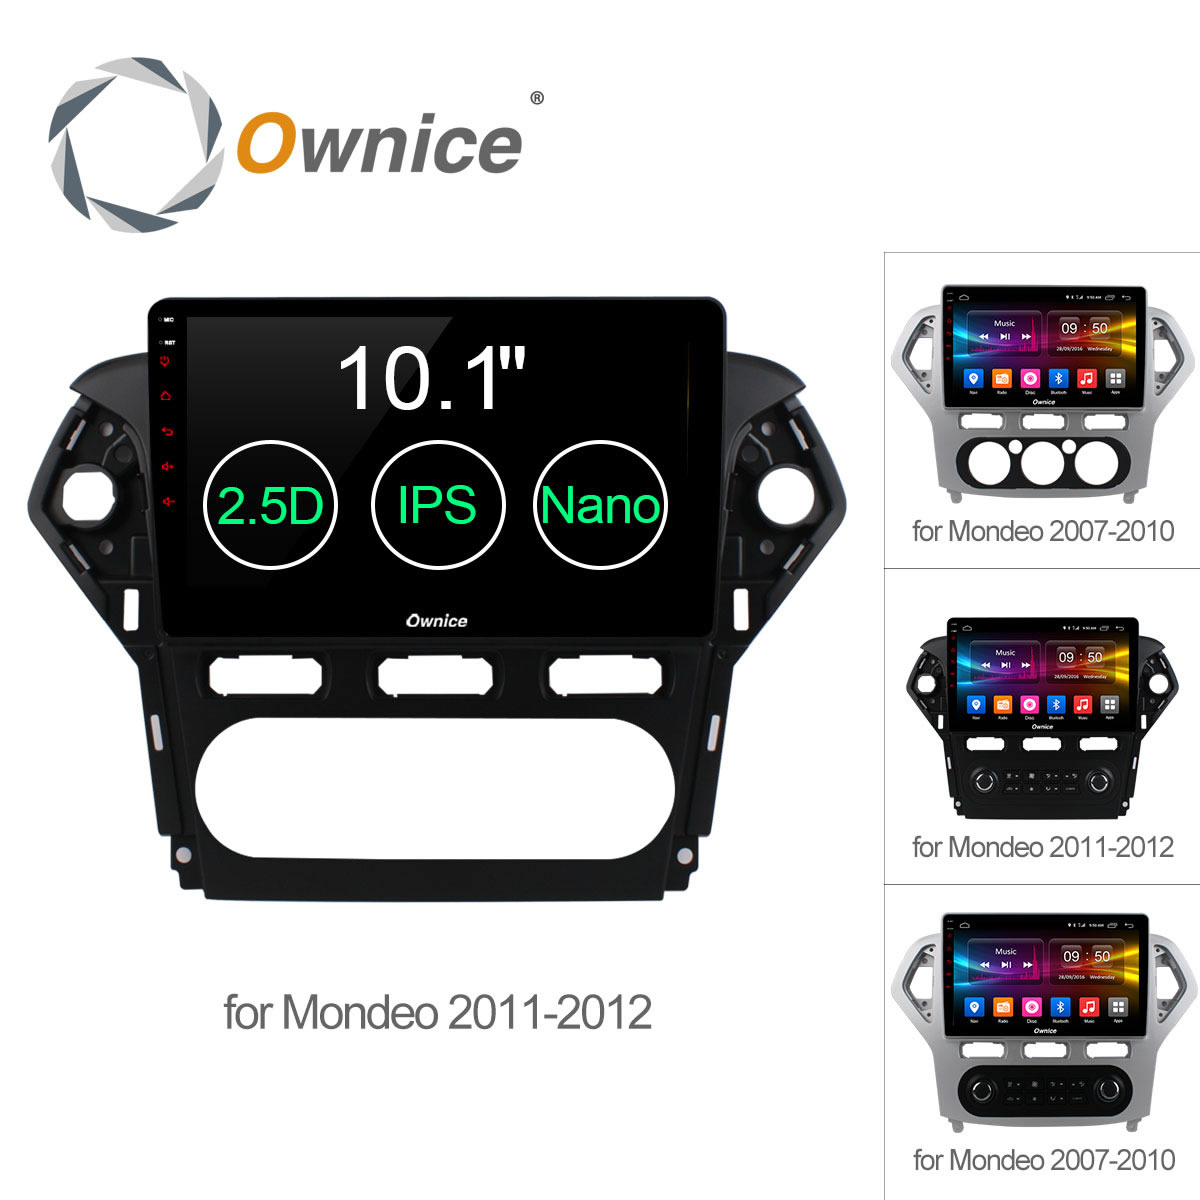 Ownice C500+ Android6.0 32G+2GB Car DVD Player GPS Navigation Radio 2.5D IPS For Ford Mondeo 2007 - 2012 Support 4G SIM DAB+ DVR ...